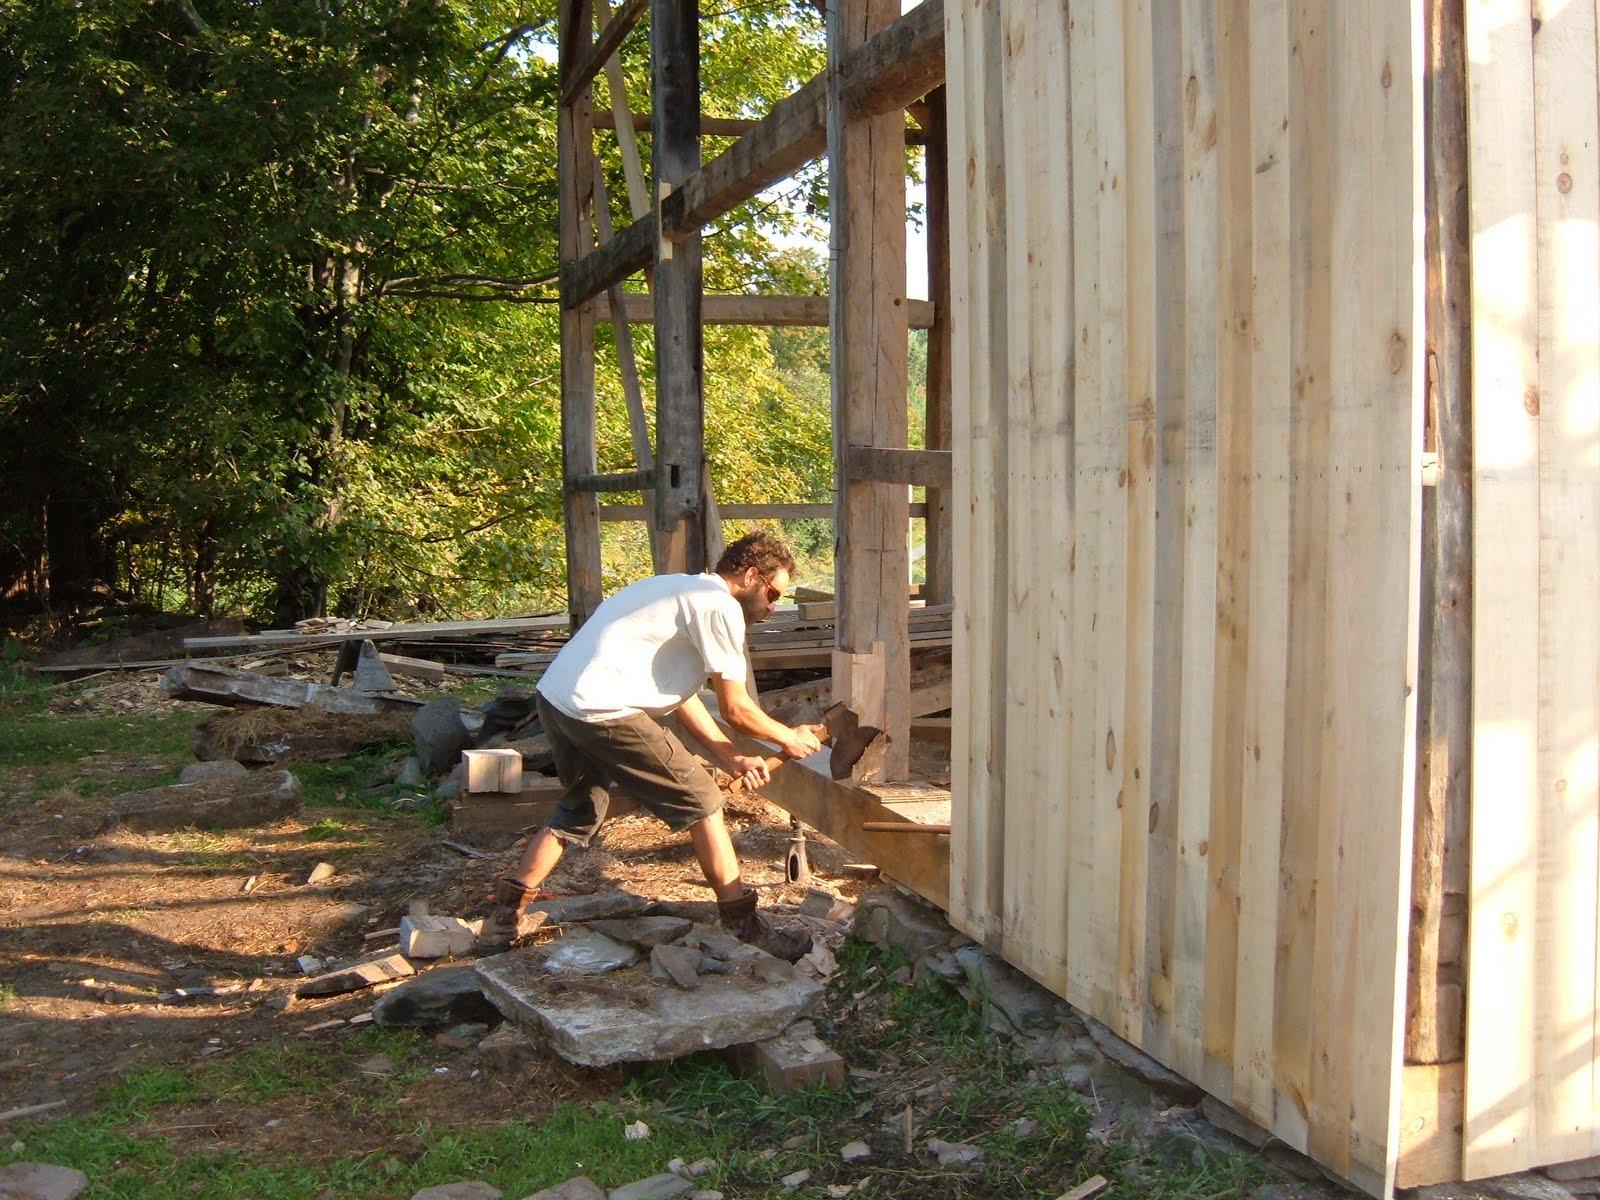 Michael Cuba surfaces a foot repair to a gable post with a broad axe.